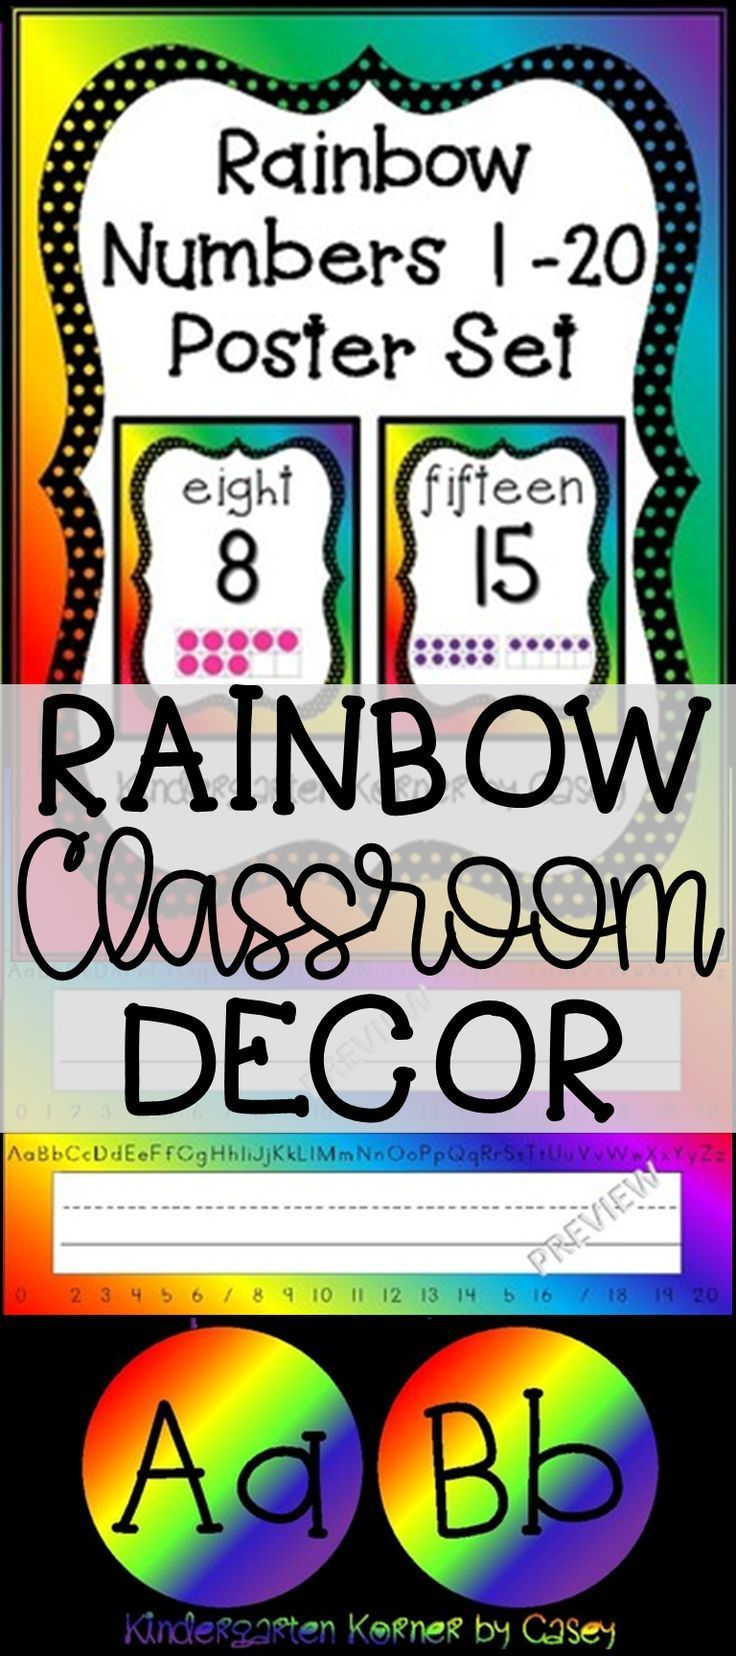 Rainbow Classroom Decor SALE! Number Posters 1 20 with